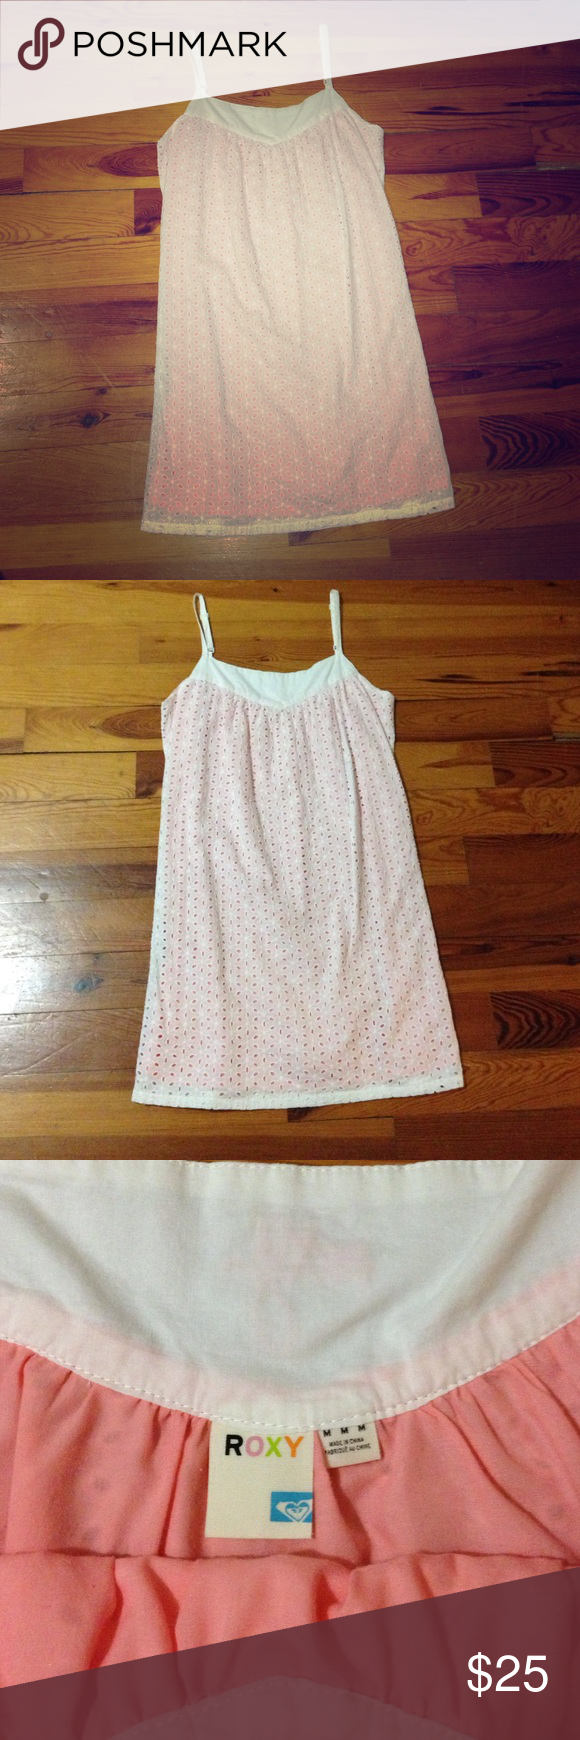 "Roxy Eyelet Dress White with Pink Underlay; Medium Roxy Eyelet Dress; Size Medium. White Eyelet over Pink Underlay. Adjustable Straps. Says ""Roxy"" at the top back of the dress. Super cute! Roxy Dresses"